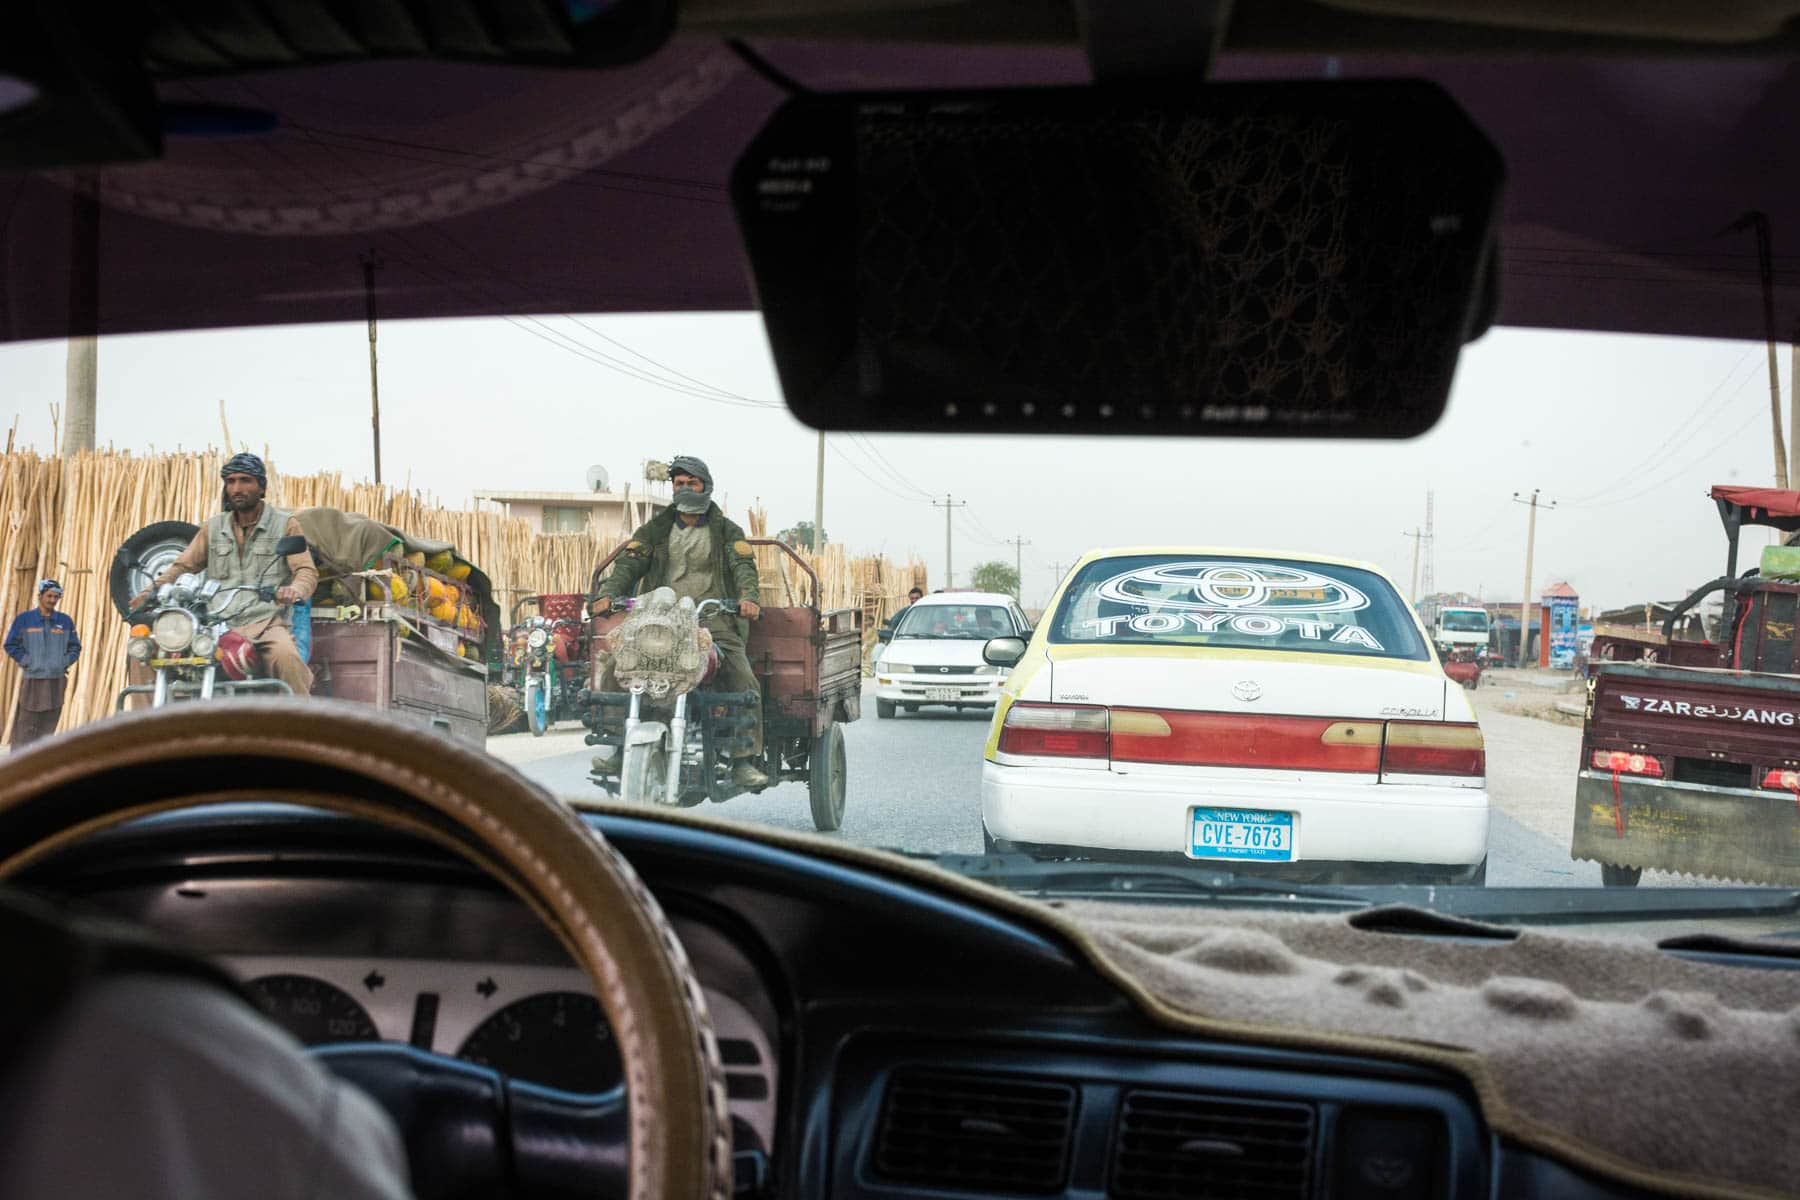 The inside of a taxi in Mazar-i-Sharif, Afghanistan